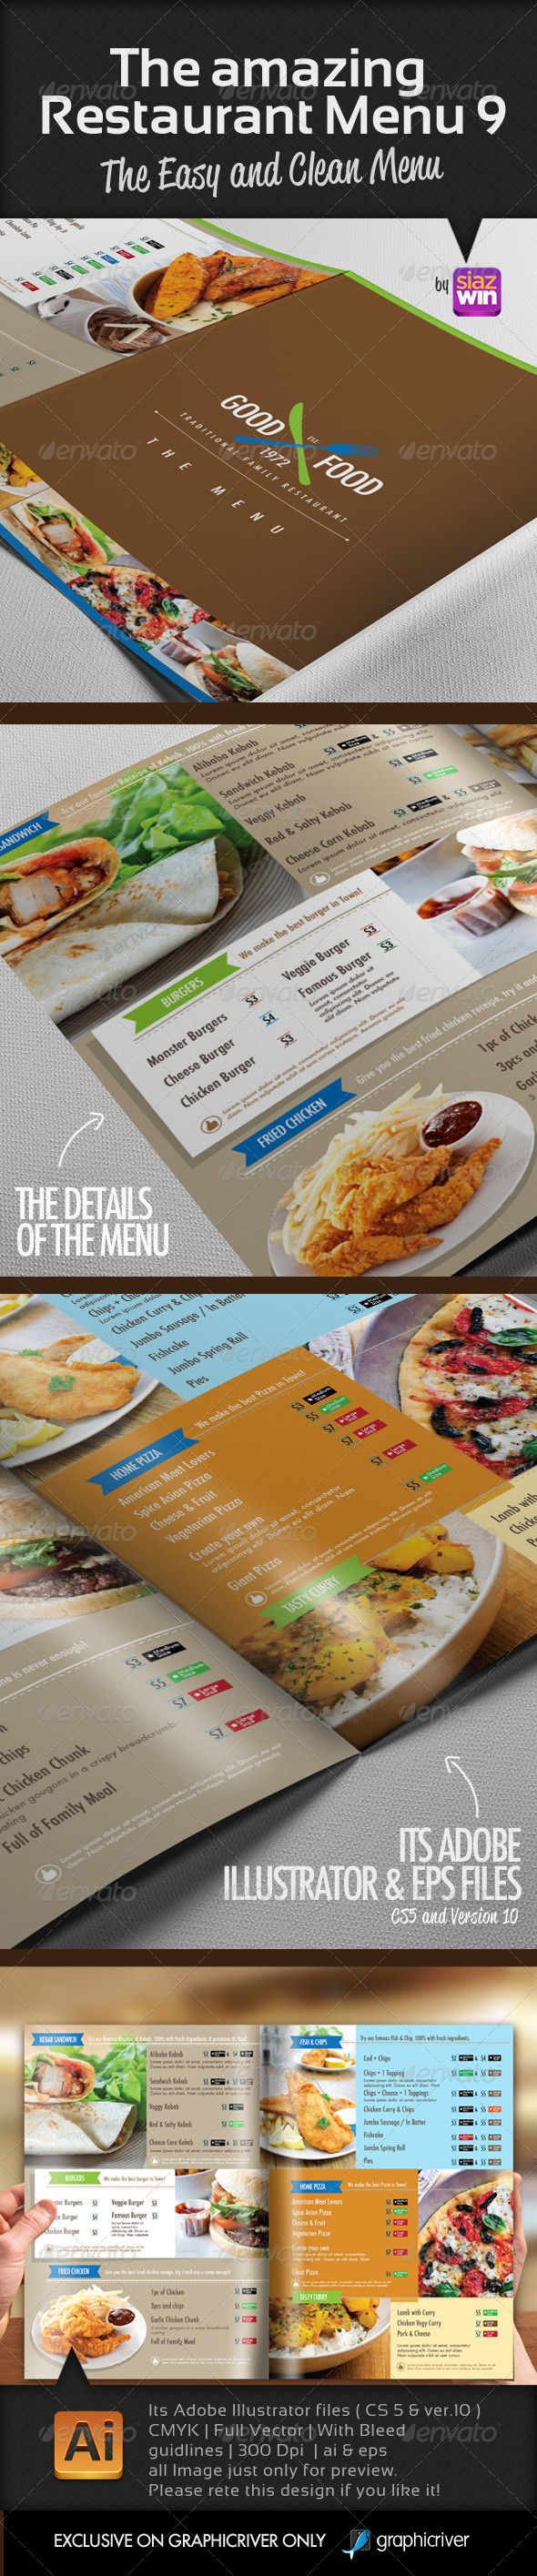 GraphicRiver The Amazing Restaurant Menu 9 7547310